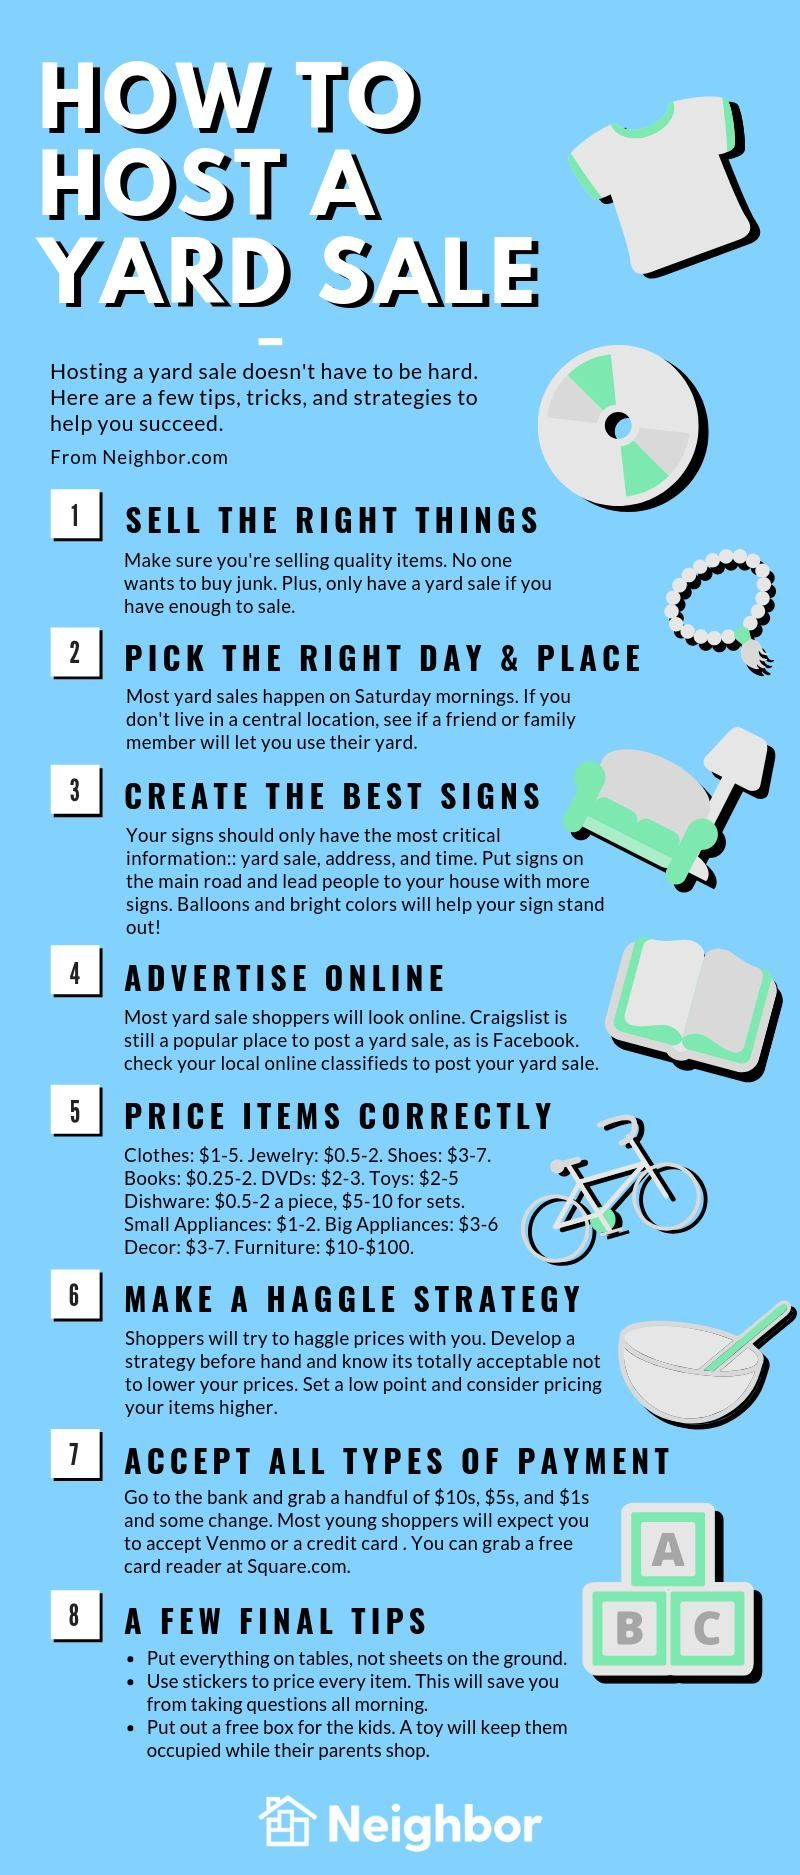 Yard Sales How to Host, Pricing, and Tips [Checklist